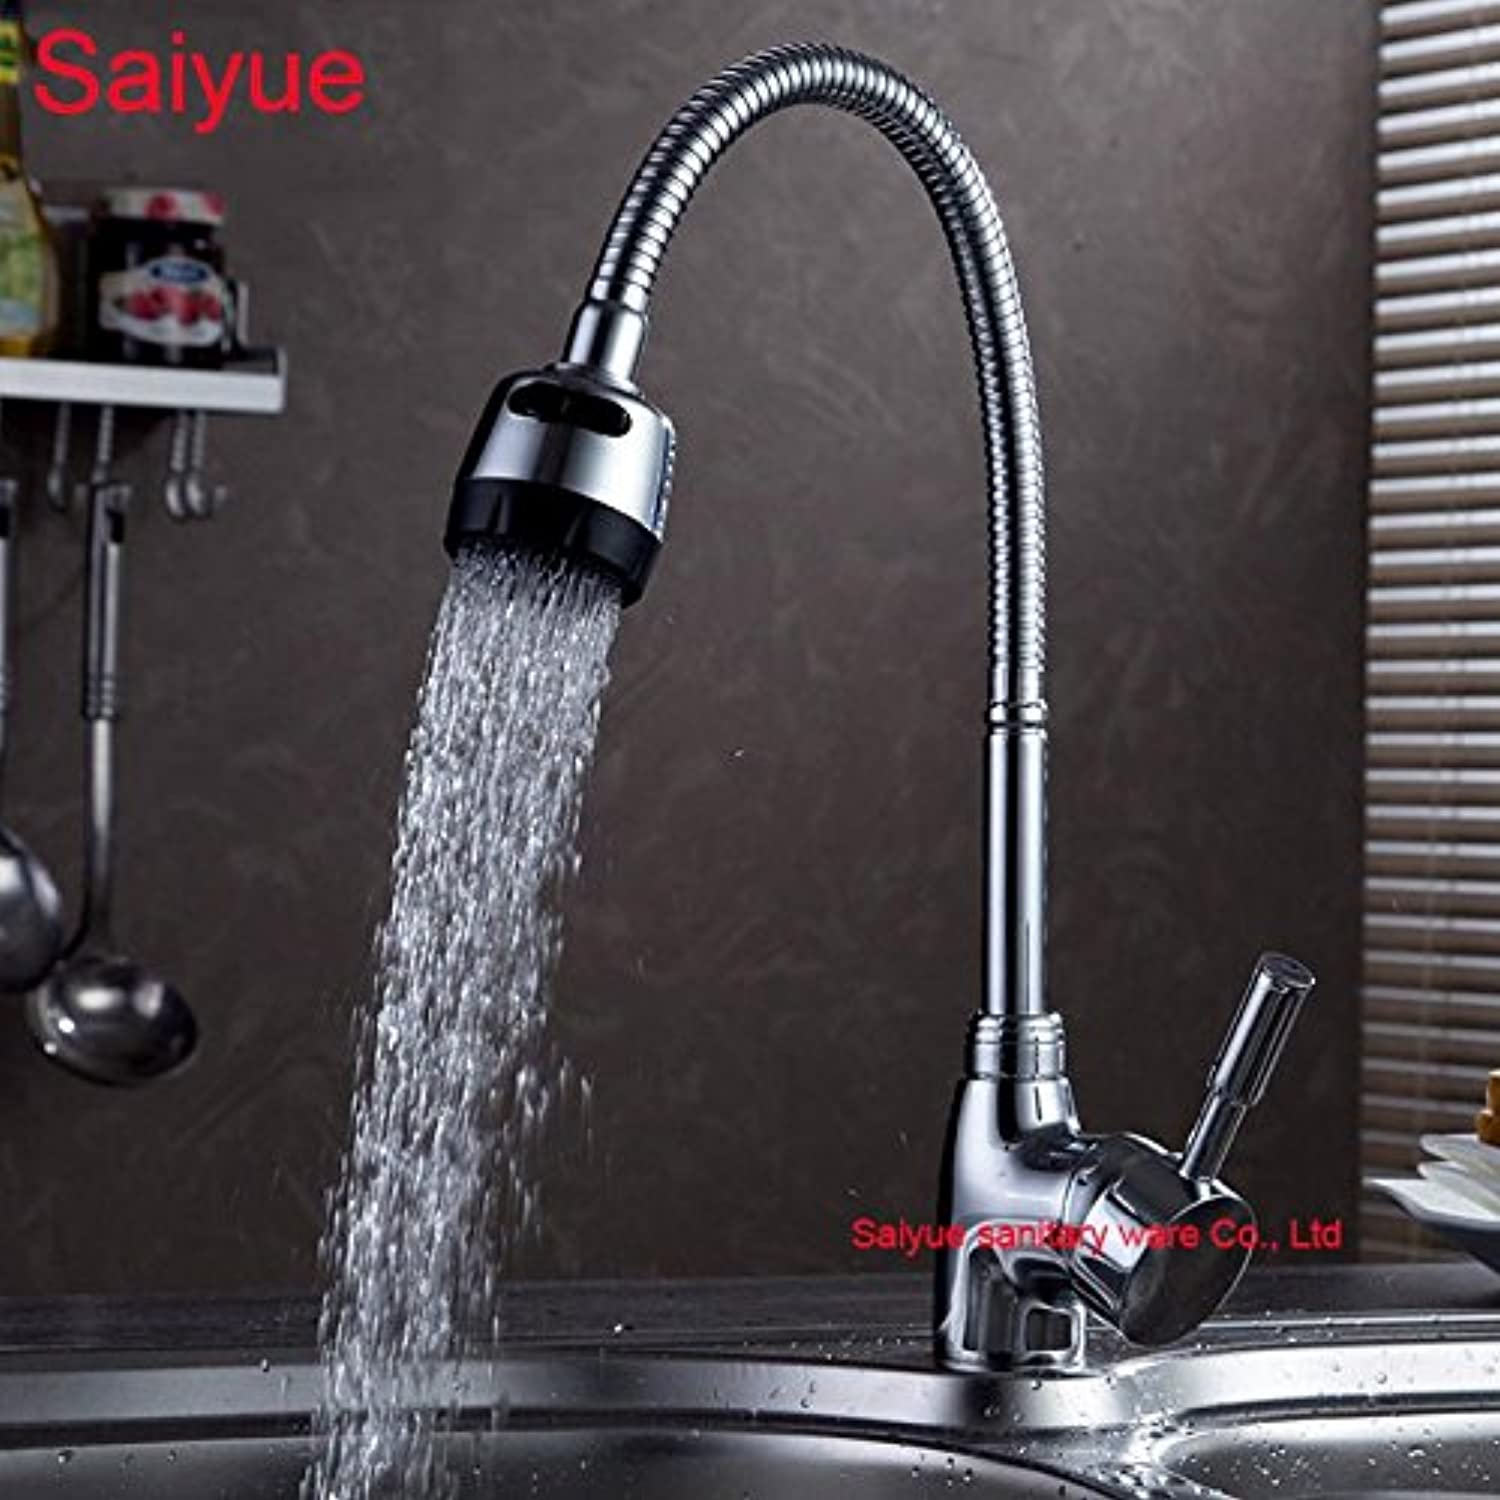 Maifeini The Hot Sales Of Universal Swivel Mixed Hot And Cold Tap-Mounting On The Deck Of The Chrome Plated Brass Copper redate The Heat Sink Bathroom Faucet Kitchen